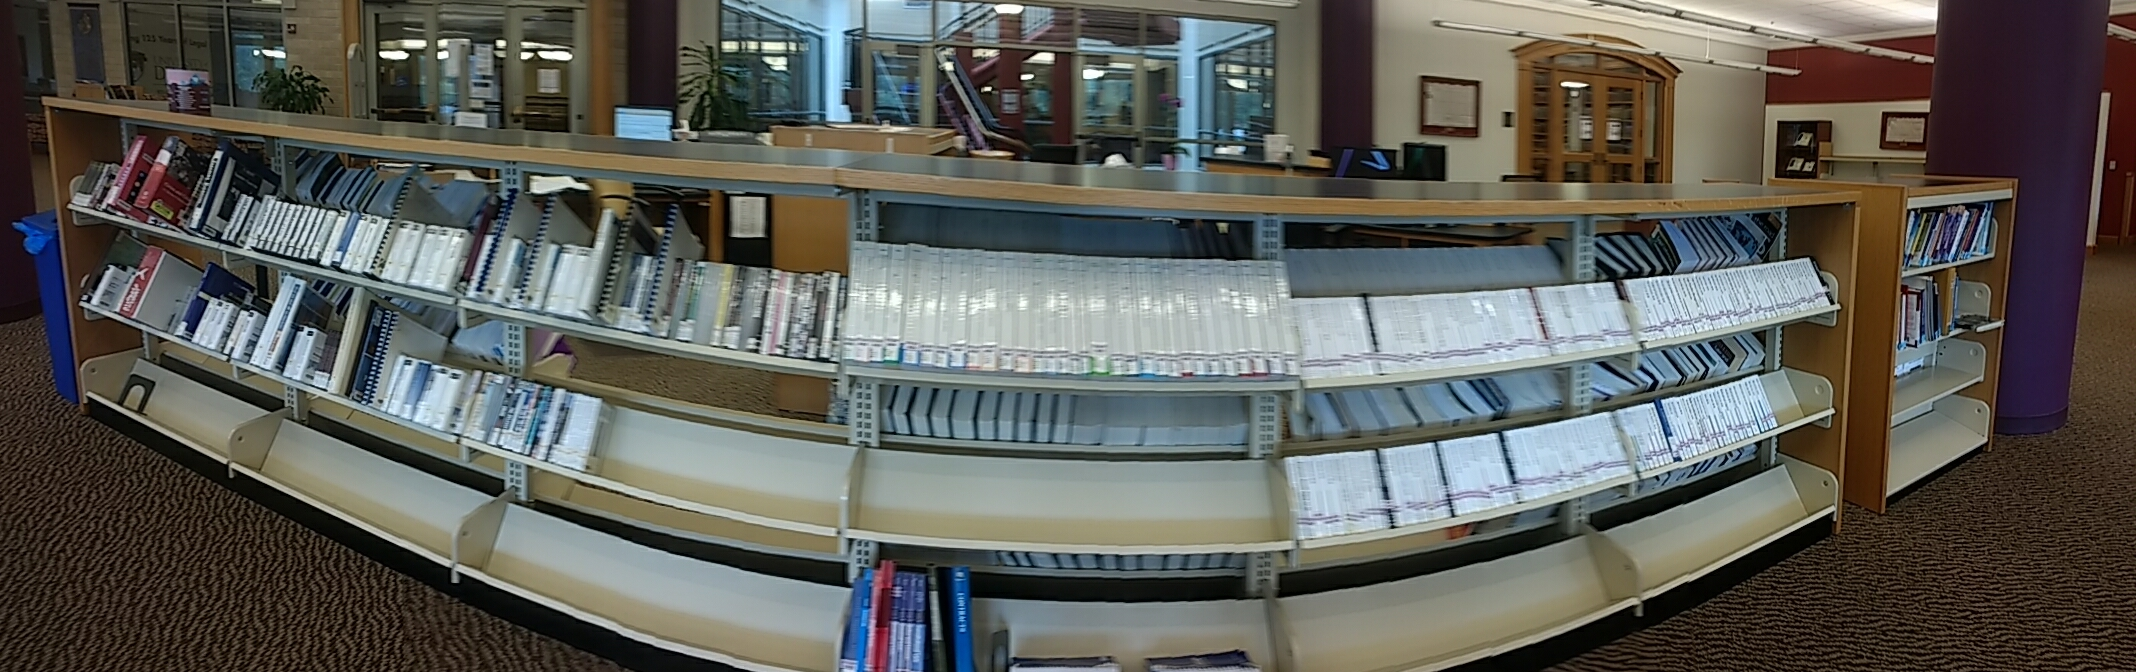 Panoramic Shot of Study Aids section